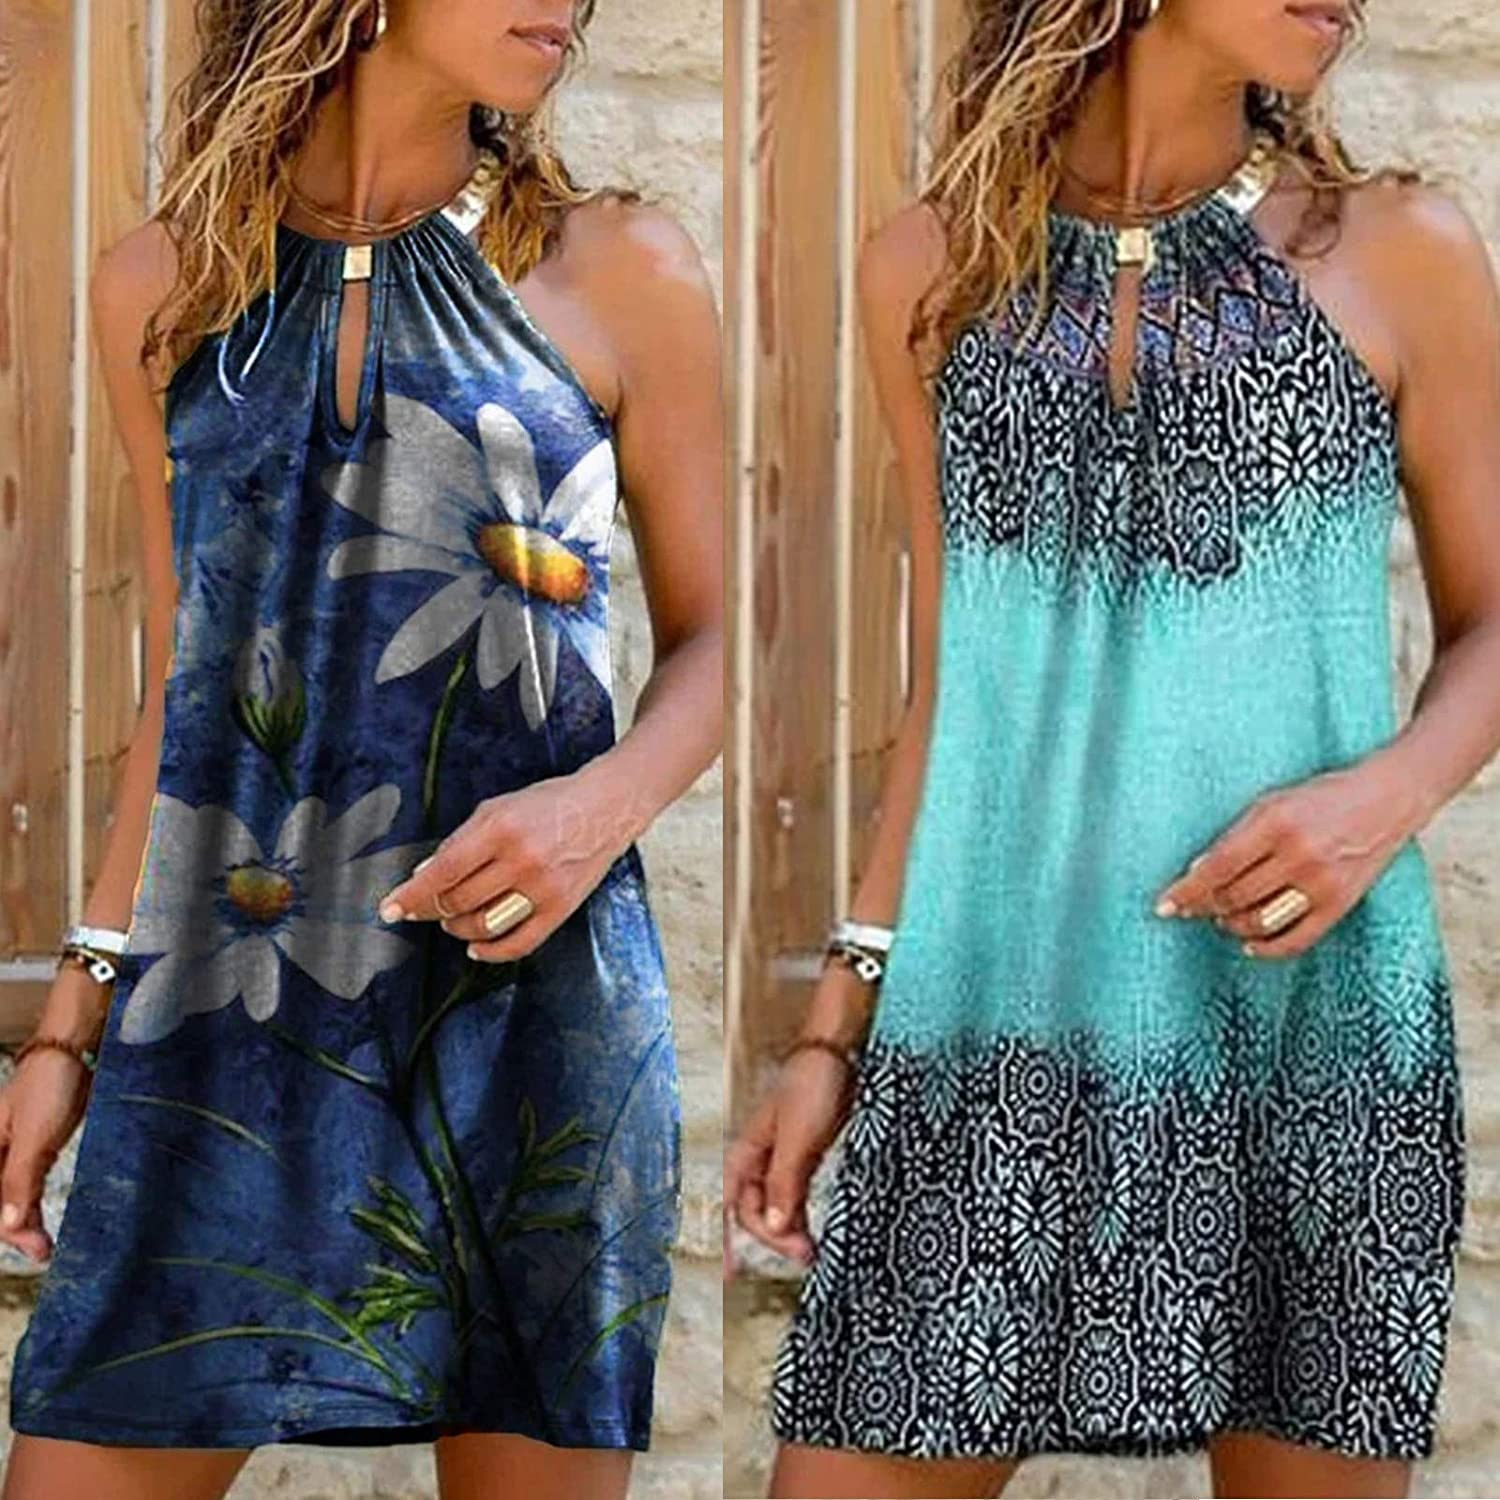 Toeava Womens Swing Dress Summer Daily Casual Strapless Metal Hanging Neck Flowy Printed Dress Party Tank Mini Dress